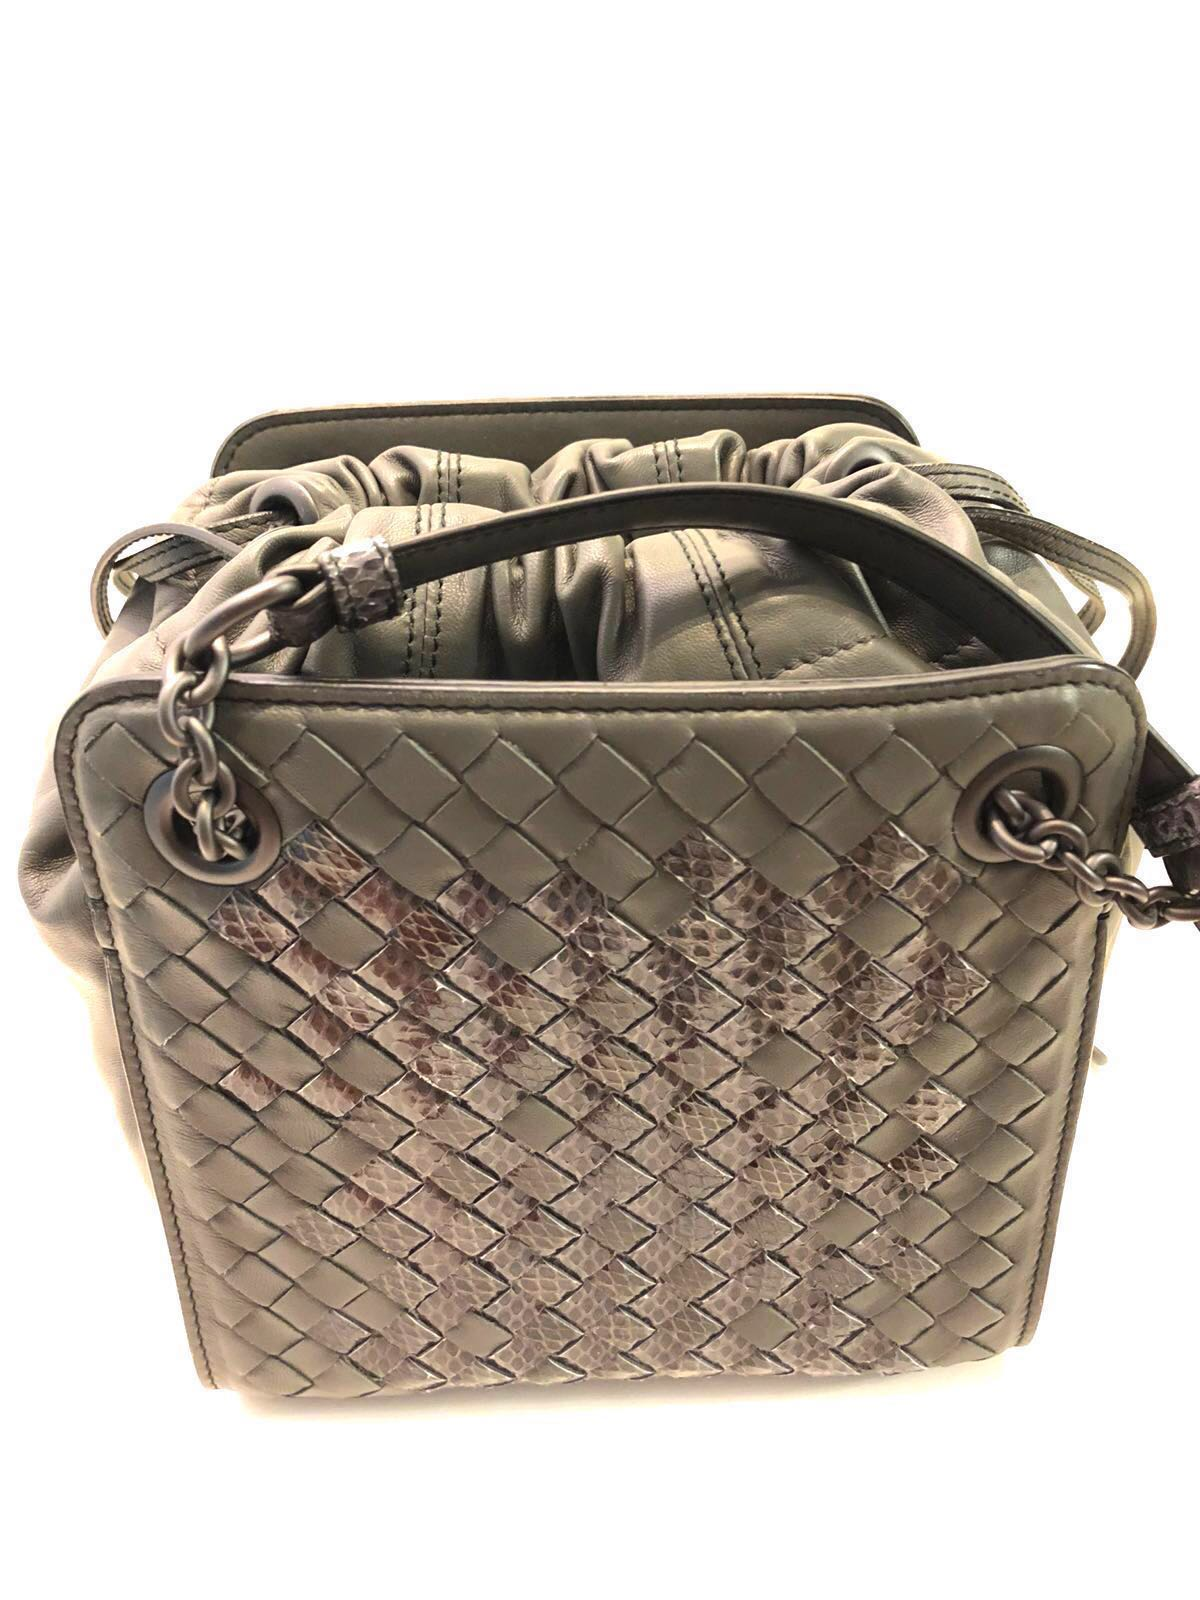 dbc77e19d7a Bottega Veneta Intrecciato Woven Nappa and Exotic Ayers Leather Mini ...